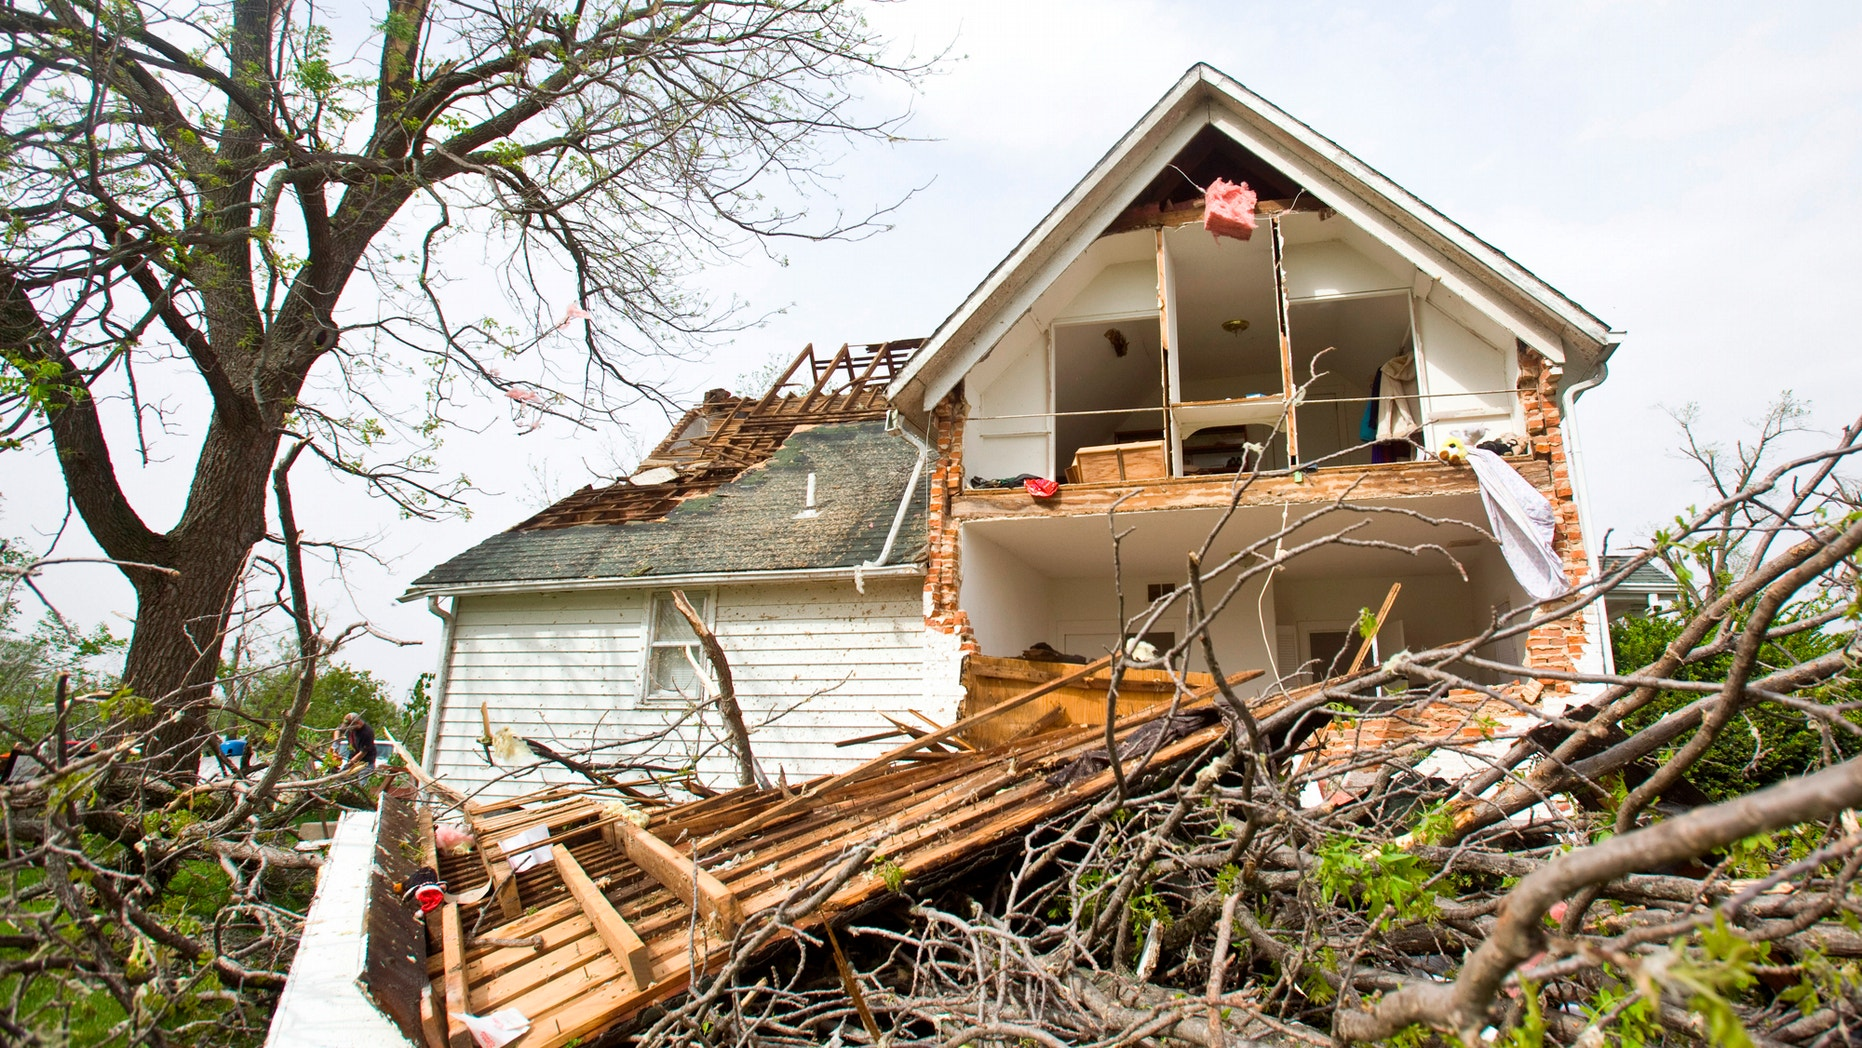 A house sits ripped-open from a tornado on Sunday, April 15, 2012 in Thurman, Iowa. Thurman appeared to be the hardest hit community in Iowa, but storms caused damage elsewhere in the state, as well as in Nebraska. There were more than 100 reports of tornadoes across the middle of the country through dawn Sunday, forecasters said. (AP Photo/The Journal-Star, Patrick Breen)